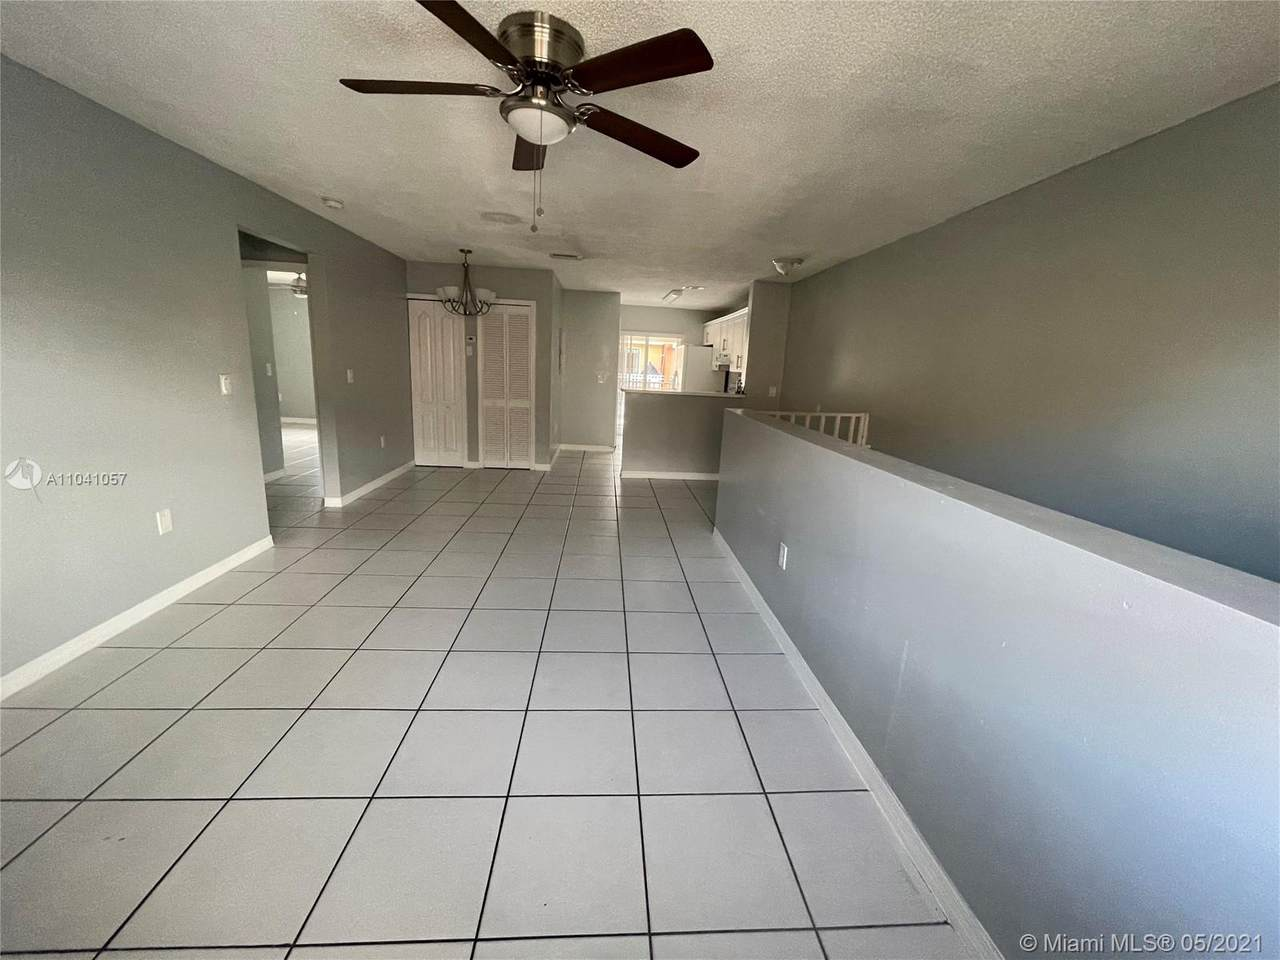 7453 22nd Ave - Photo 1